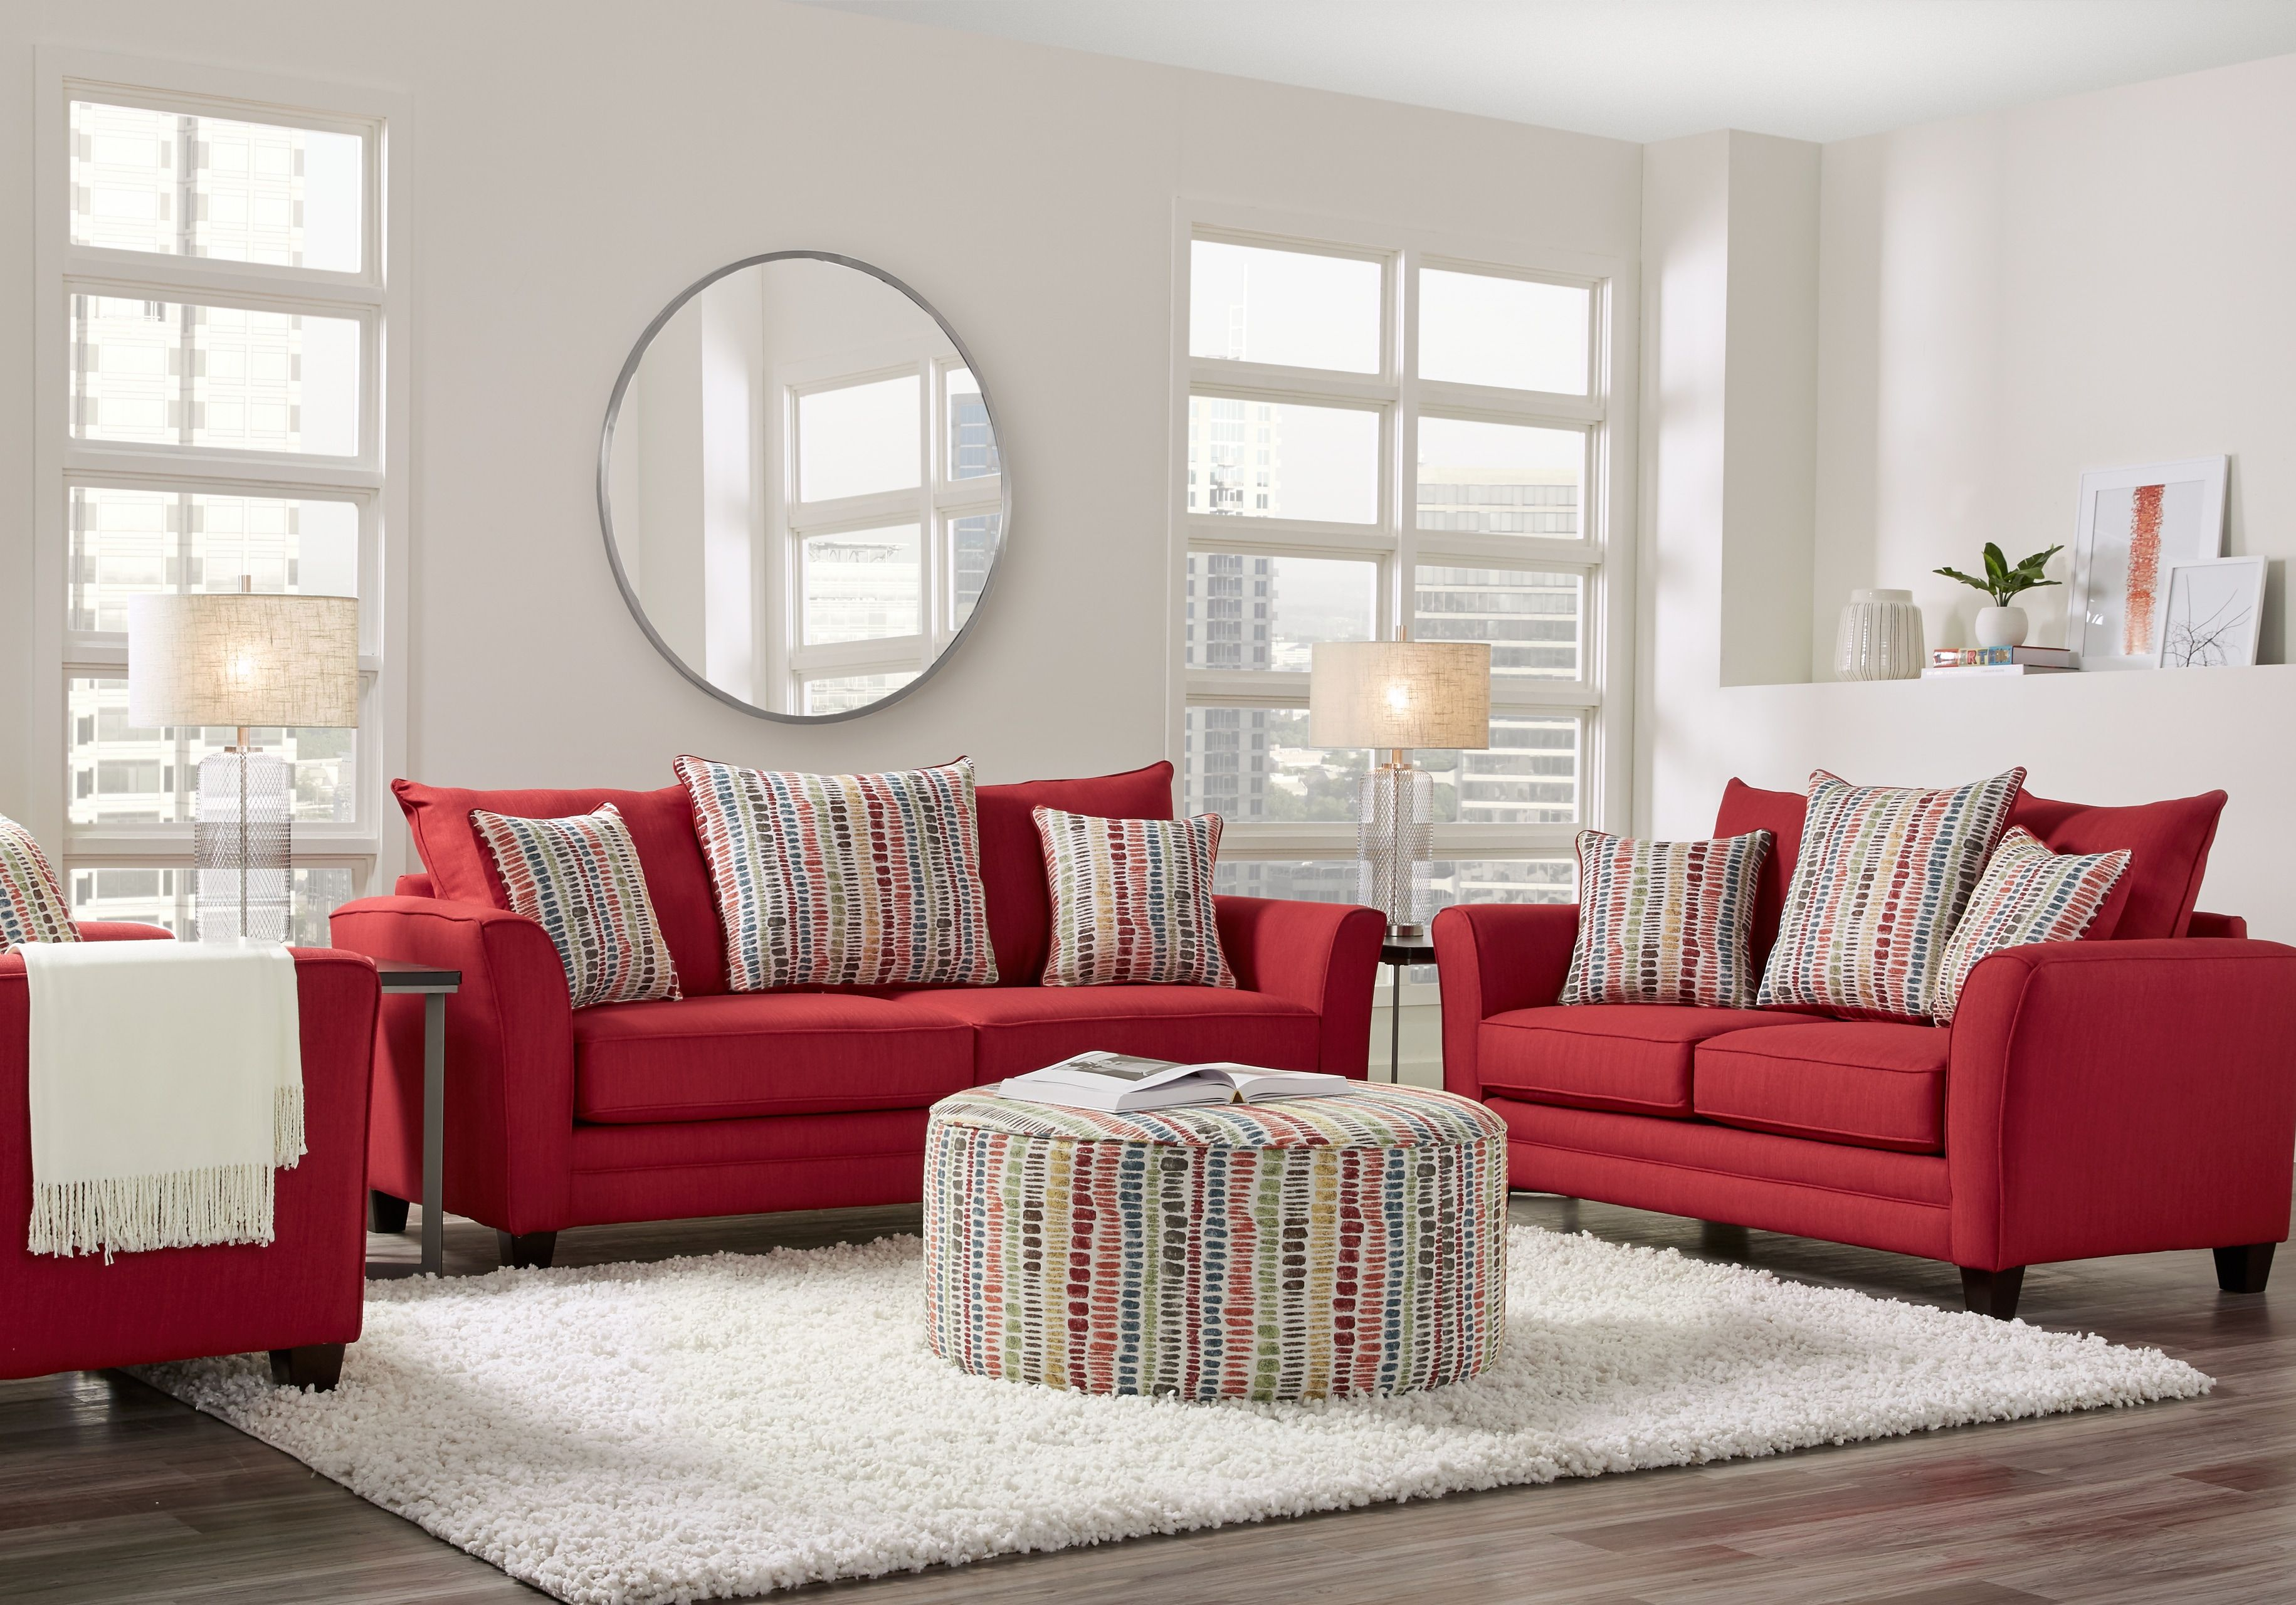 Marlette Red 8 Pc Living Room Red Sofa Living Room Red Leather Couch Living Room Red Couch Living Room #red #couch #living #room #decor